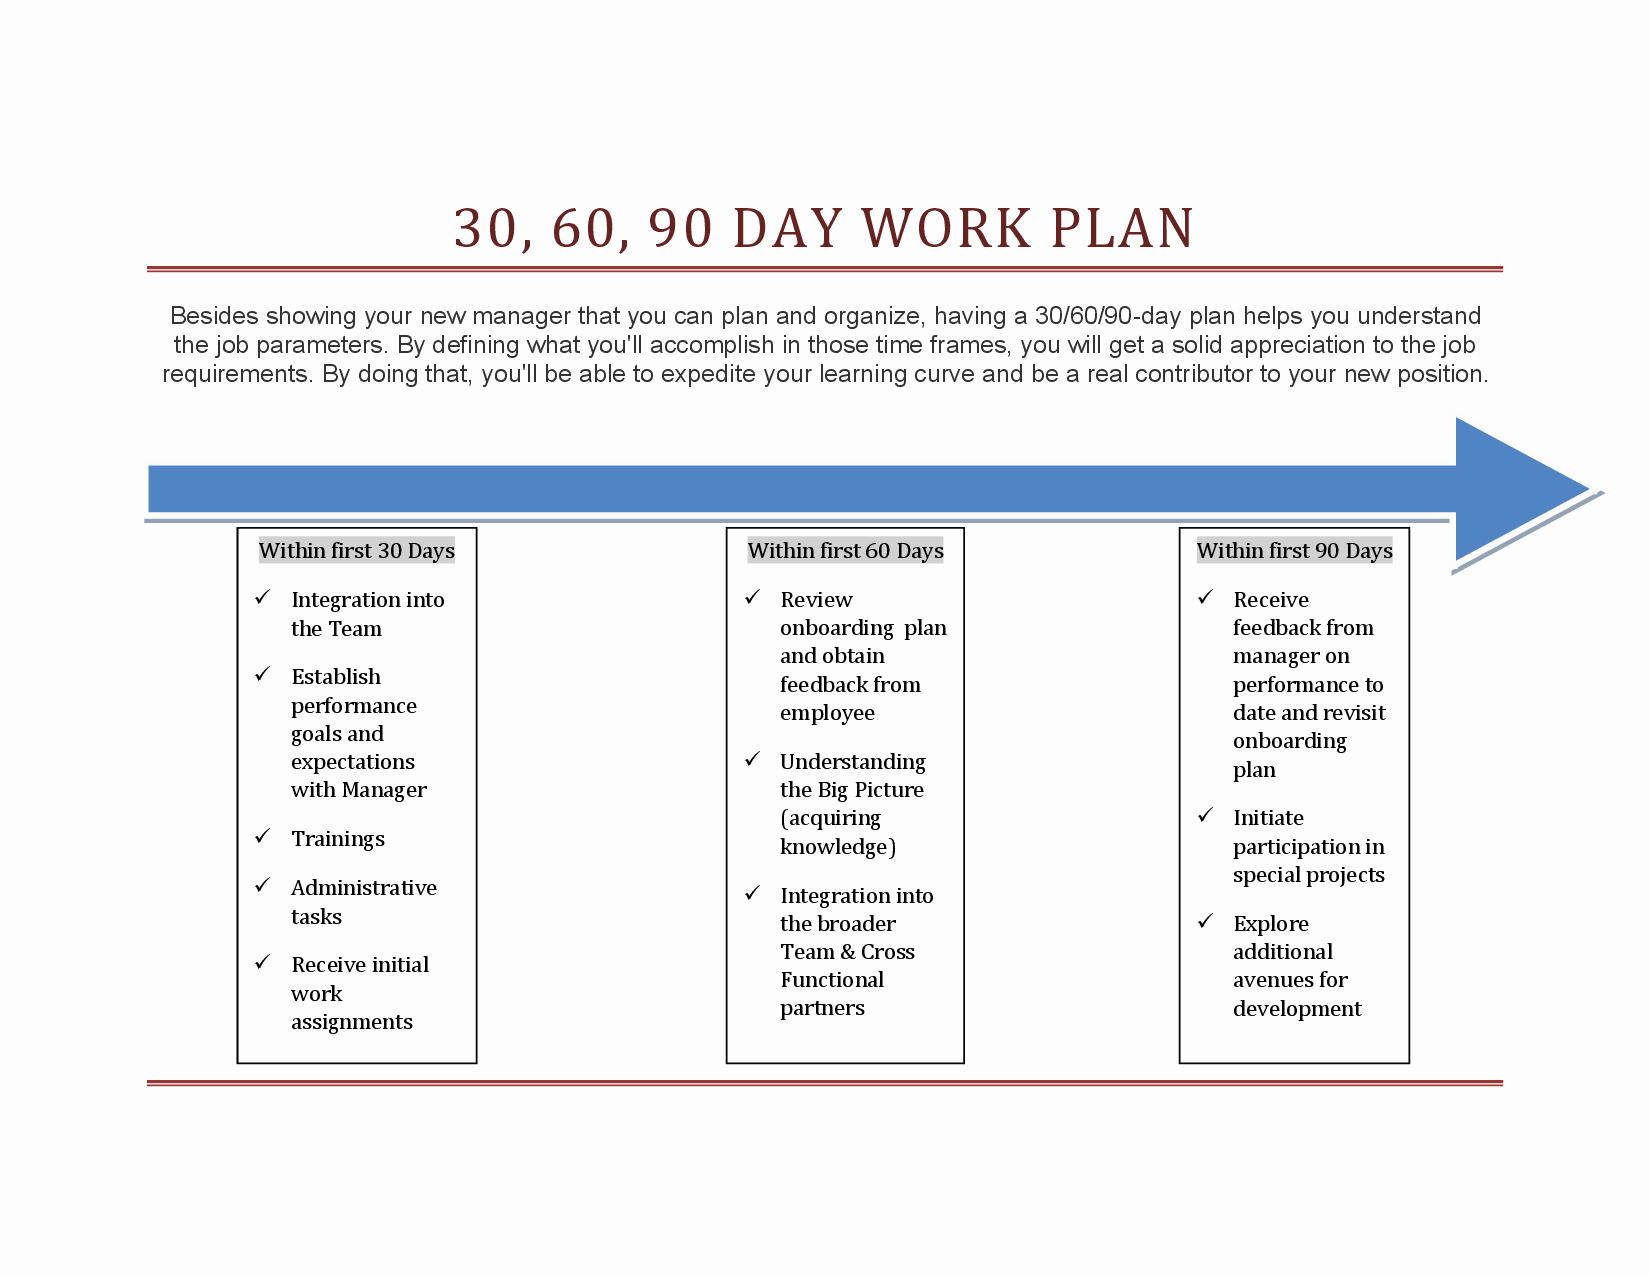 30 Day Plan Template Elegant 30 60 90 Day Work Plan Templatepdf by Tinammckenna